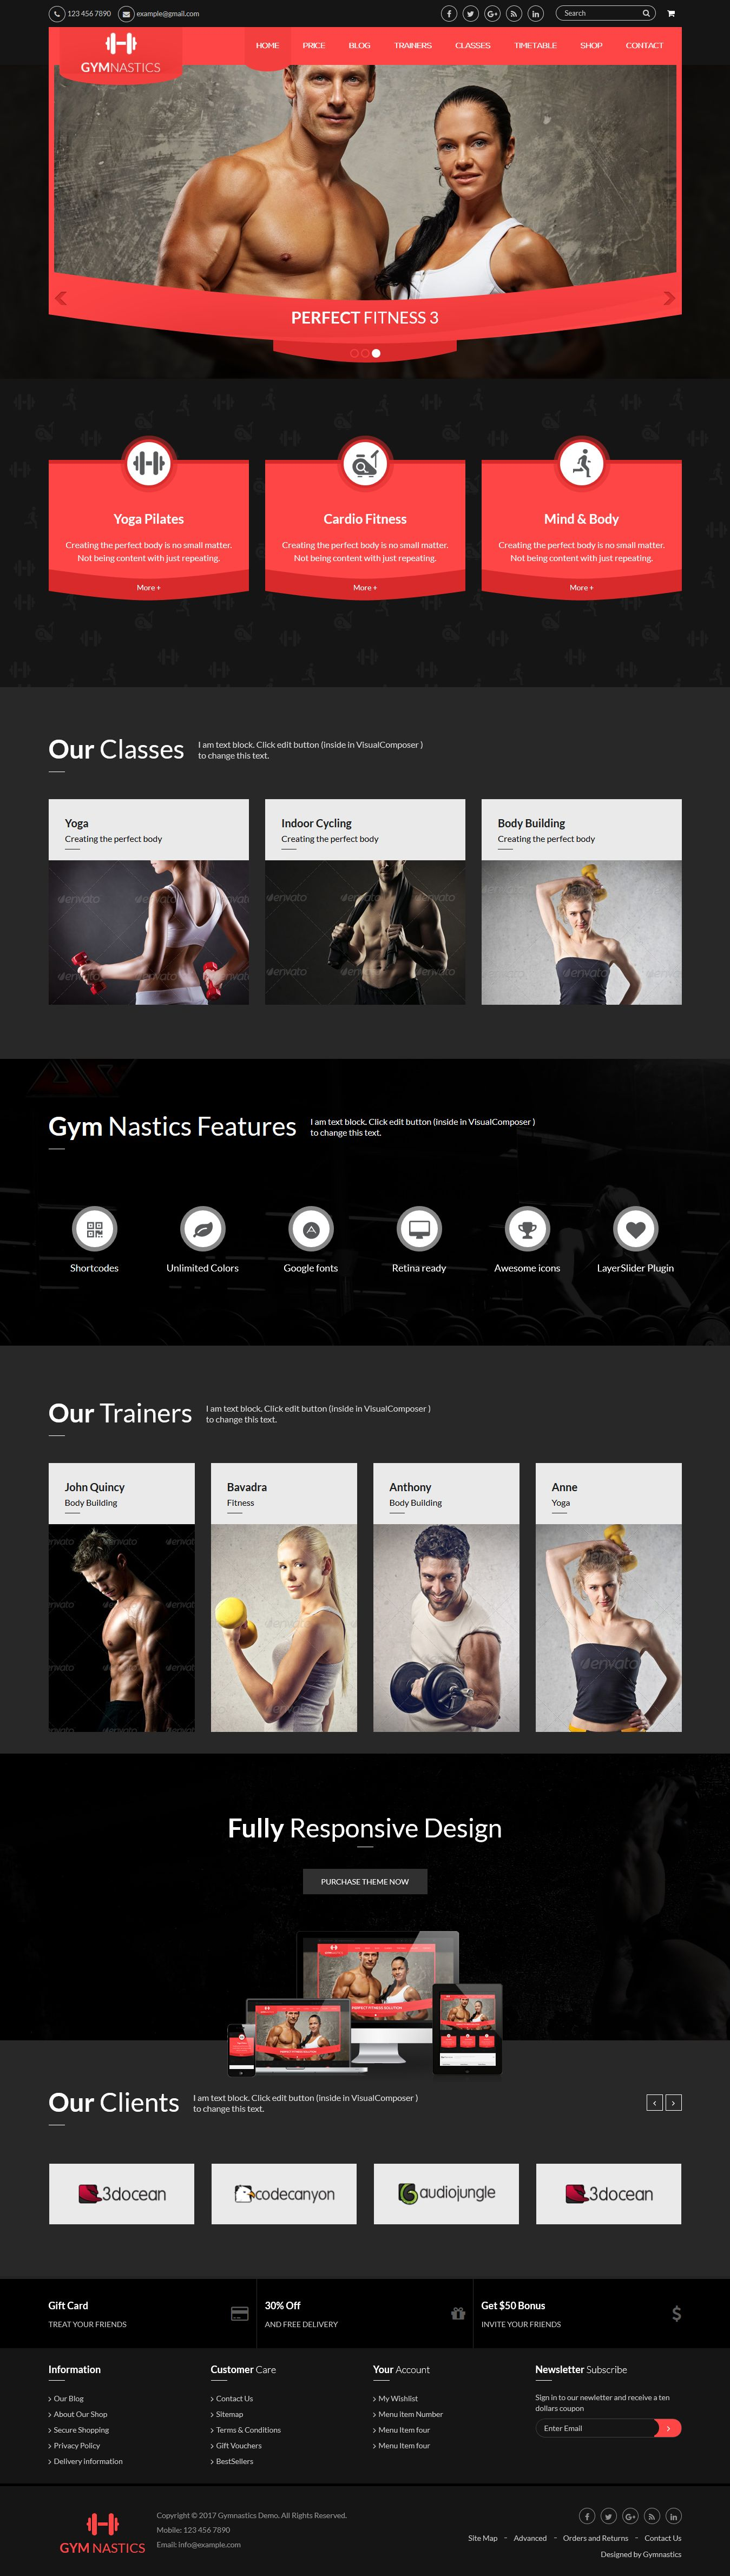 gym_preview Gymnastics WordPress Theme theme WordPress